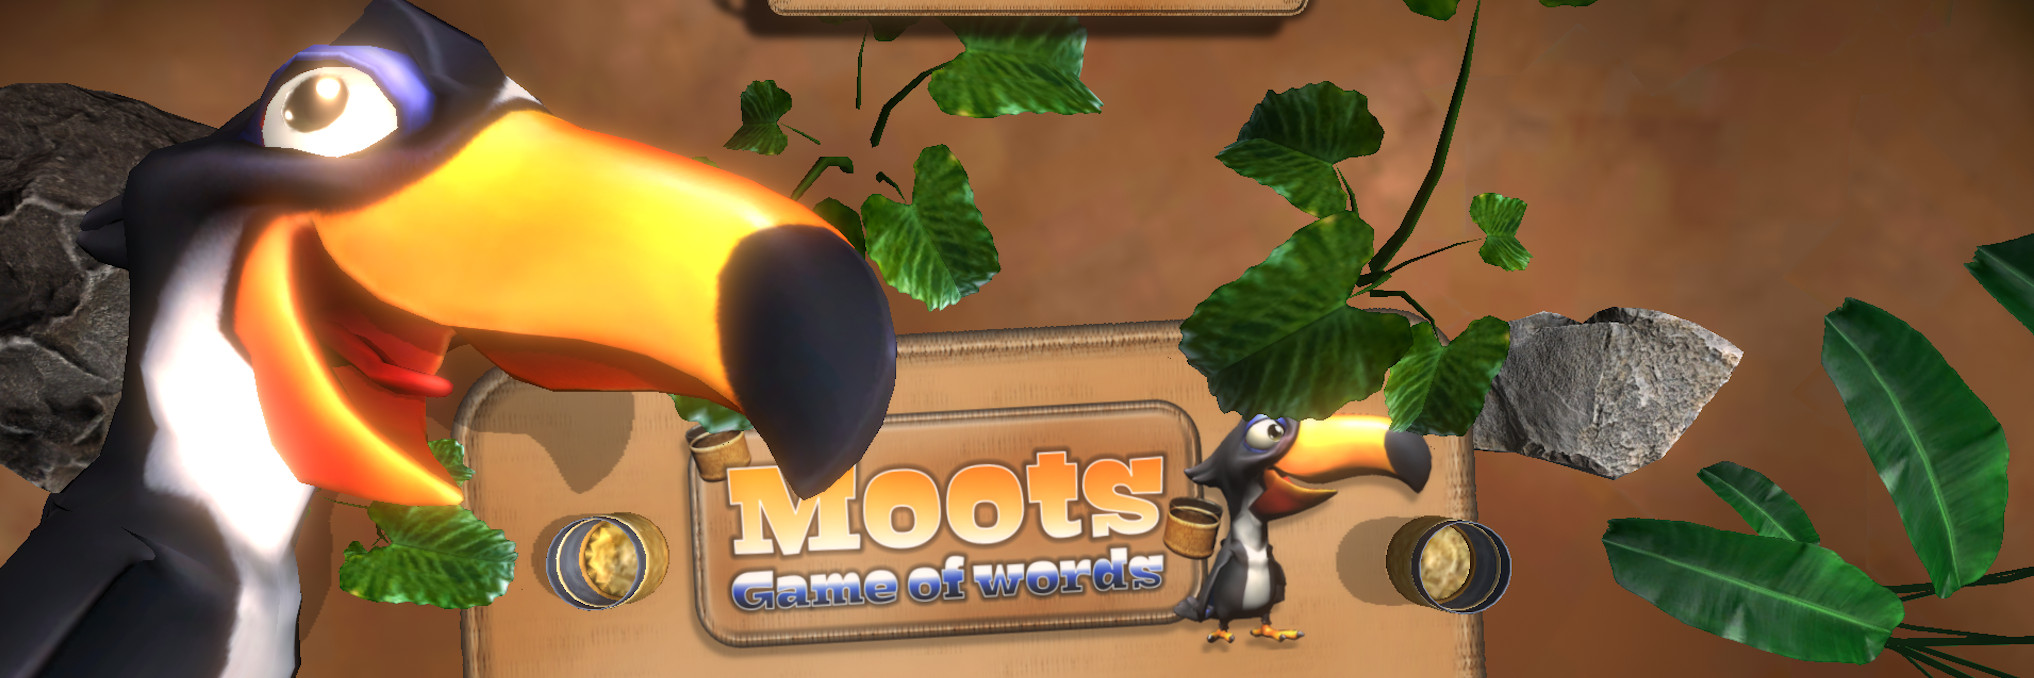 Moots game banner